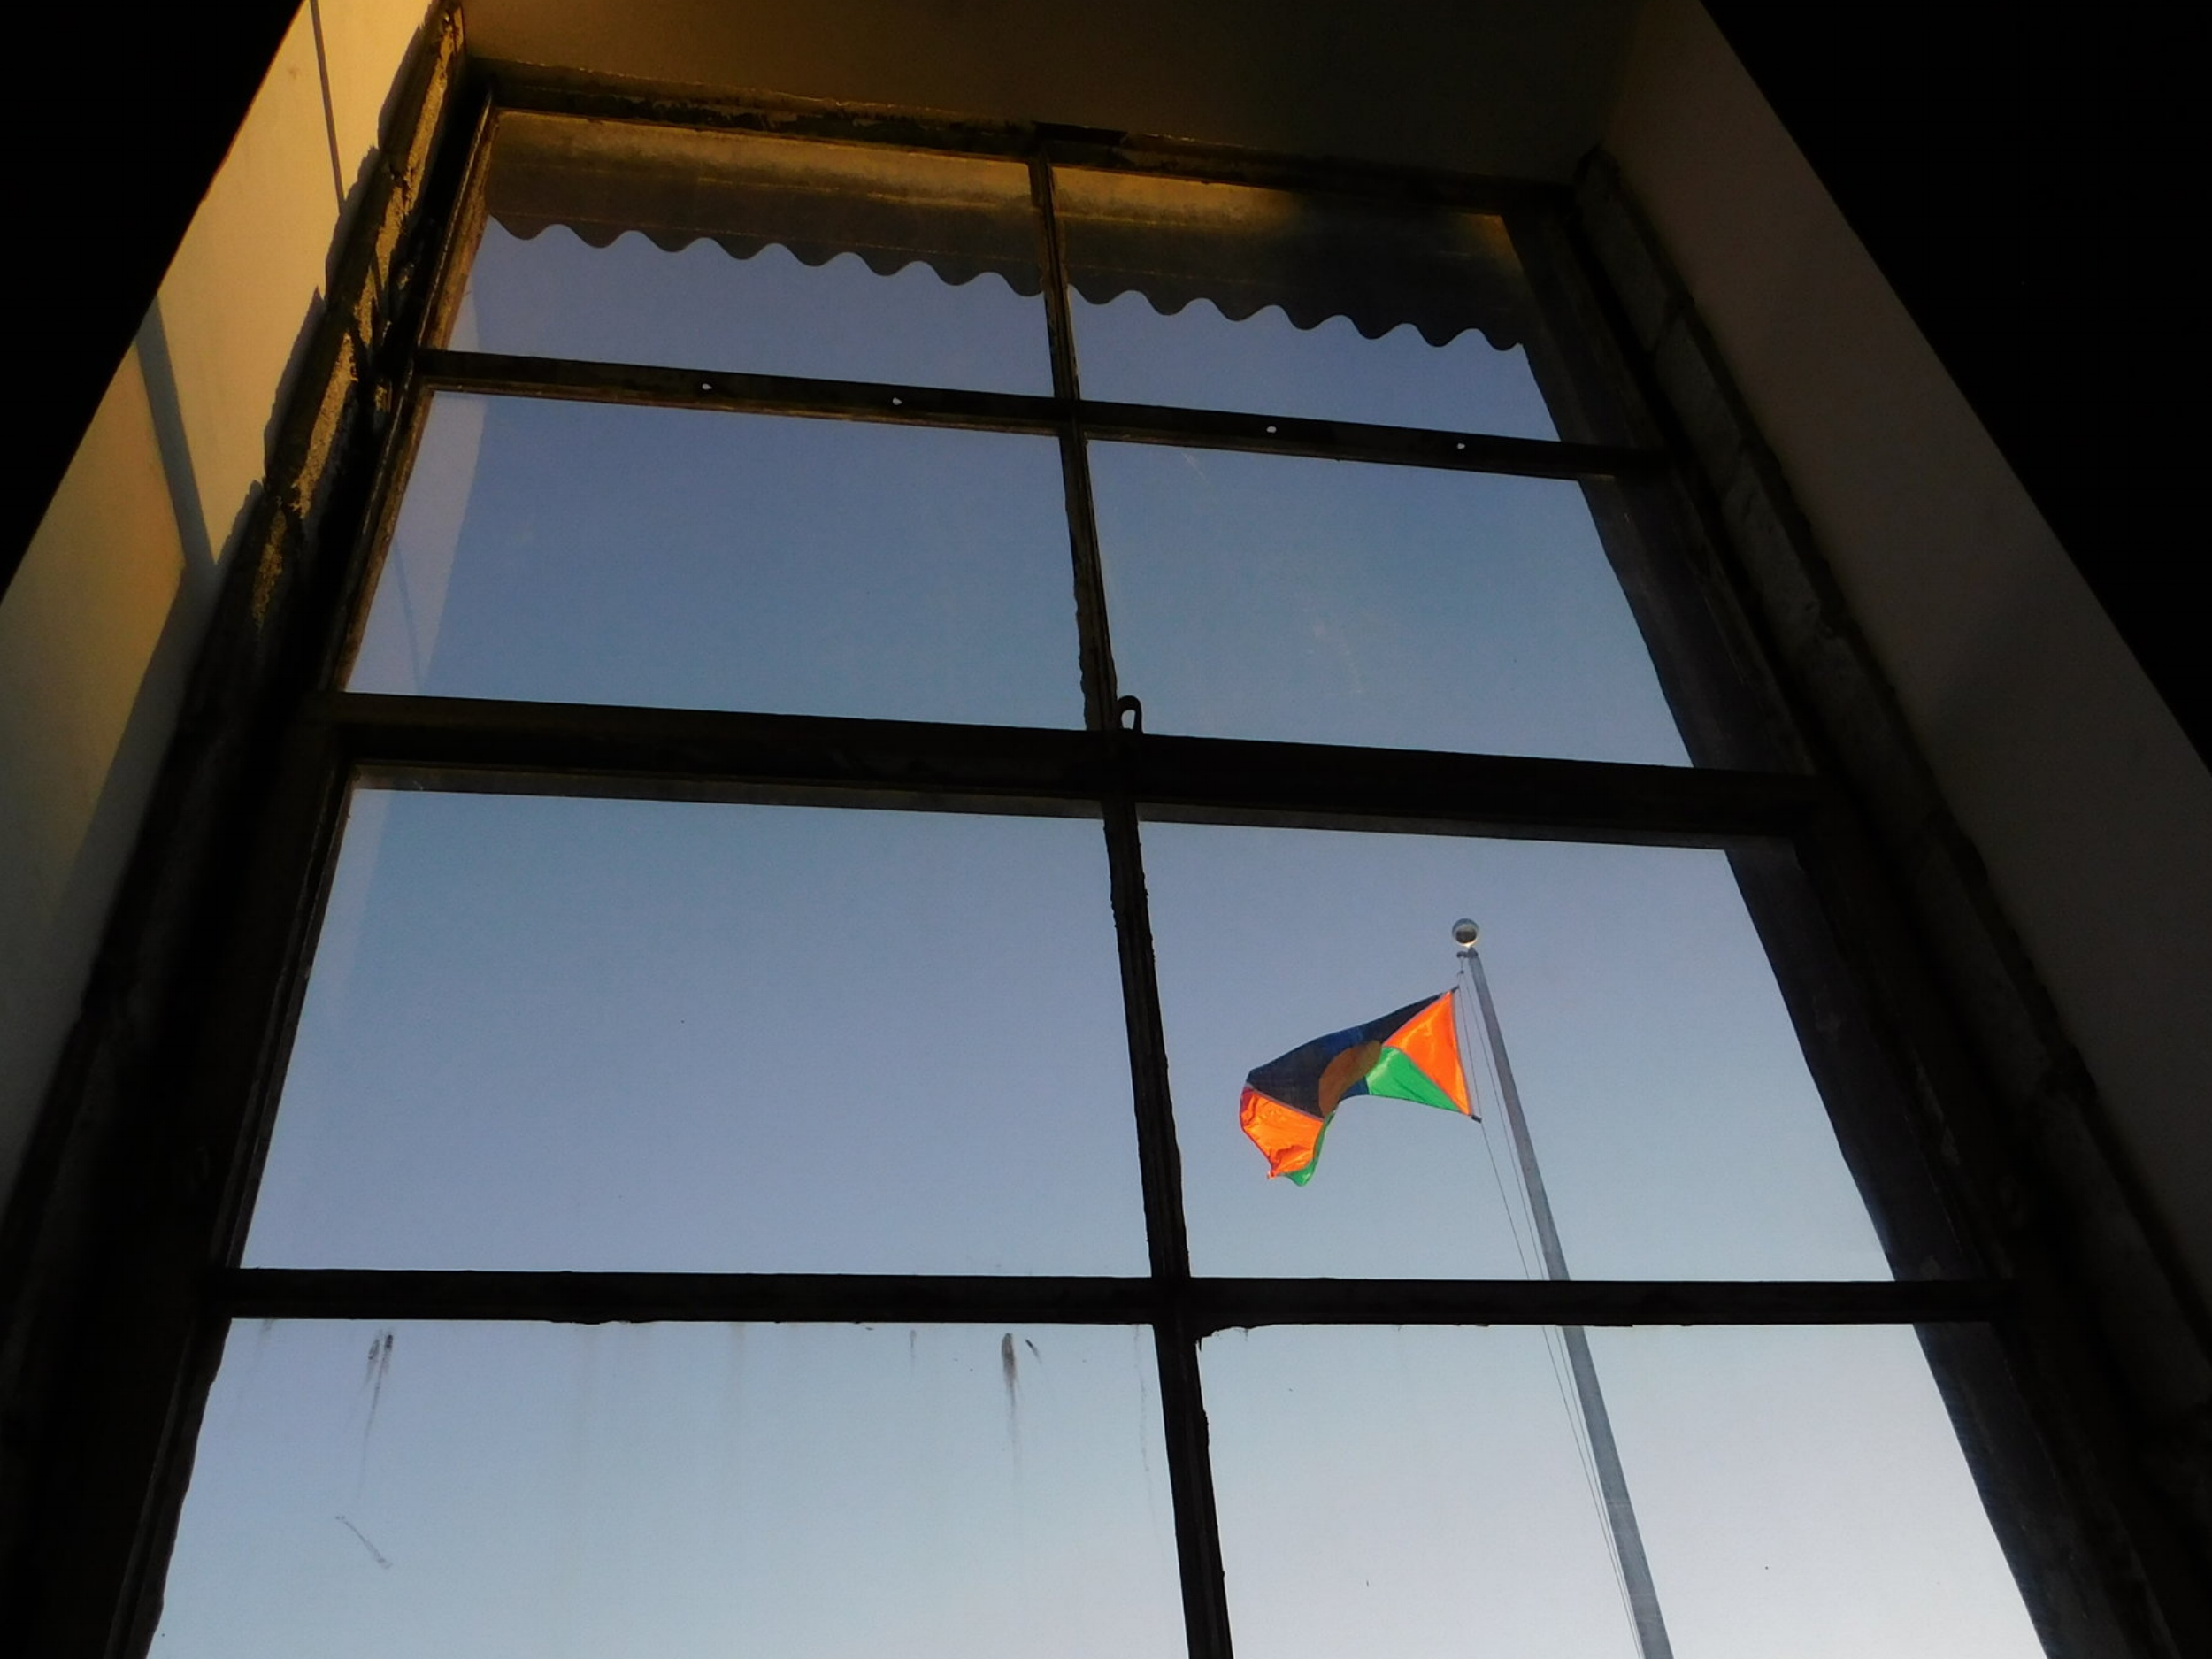 The New Davonhaime flag that Mohammed created for the flagpole outside of the Knockdown Center, as viewed from within his exhibition. Photo by the author.